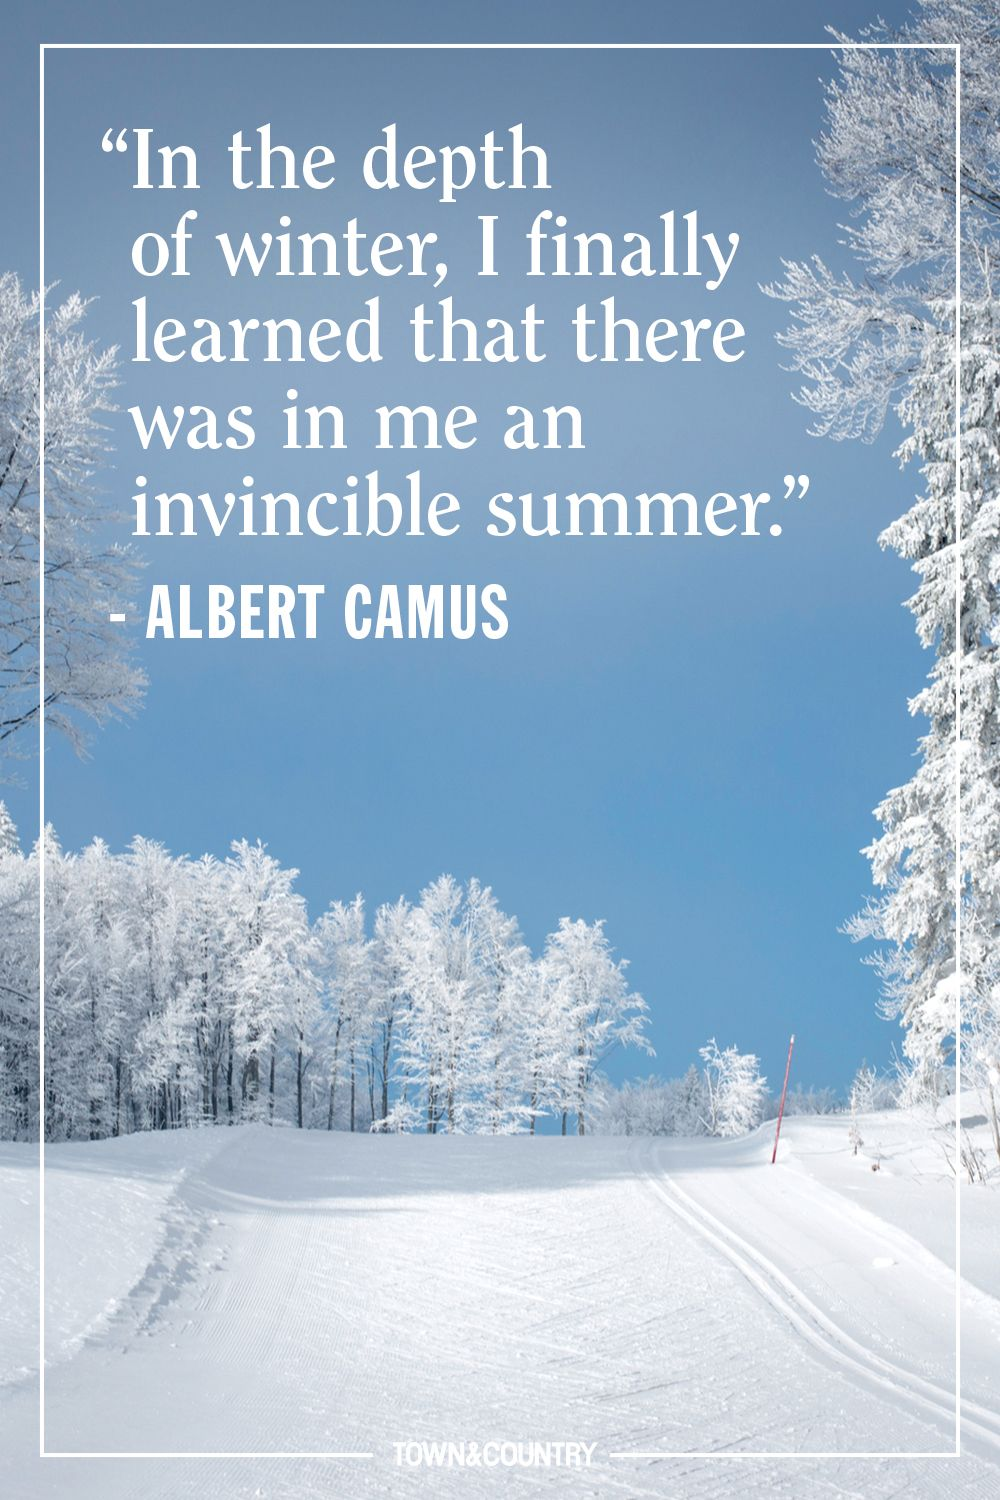 22 Best Winter Quotes  Cute Sayings About Snow & The. Quotes To Live By For Students. Boyfriend Quotes At Christmas. Alice In Wonderland Quotes You Could Stay. Song Quotes Marriage. Life Quotes To Live By Pinterest. Travel Quotes T Shirts. Marilyn Monroe Quotes History. Quotes About Love And Laughter